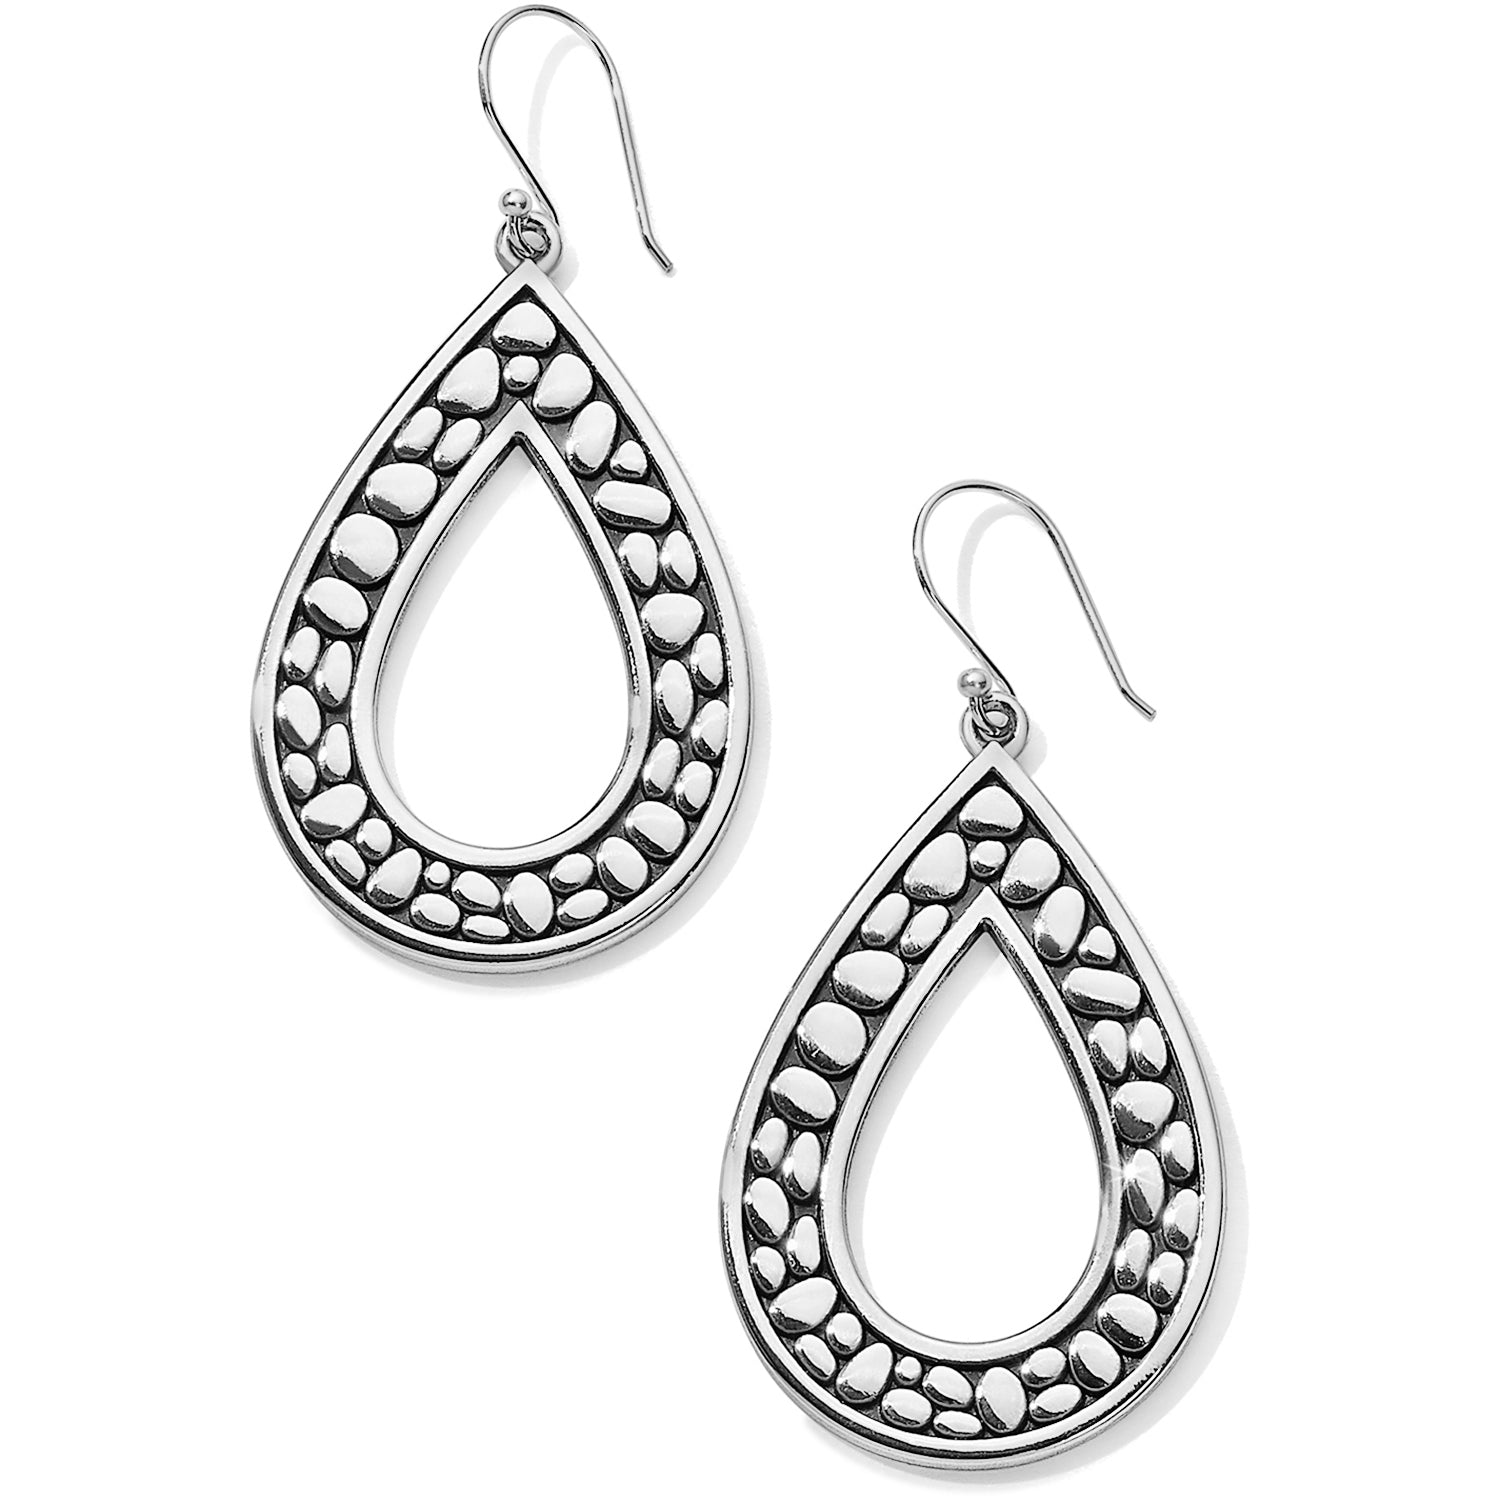 "Brighton Pebble Open Teardrop Reversible Earrings are enhanced with their Pebble motif, lending an organic feel to your look. Width: 1 1/8"" Type: French Wire Drop: 1 3/4"" Finish: Silver plated"